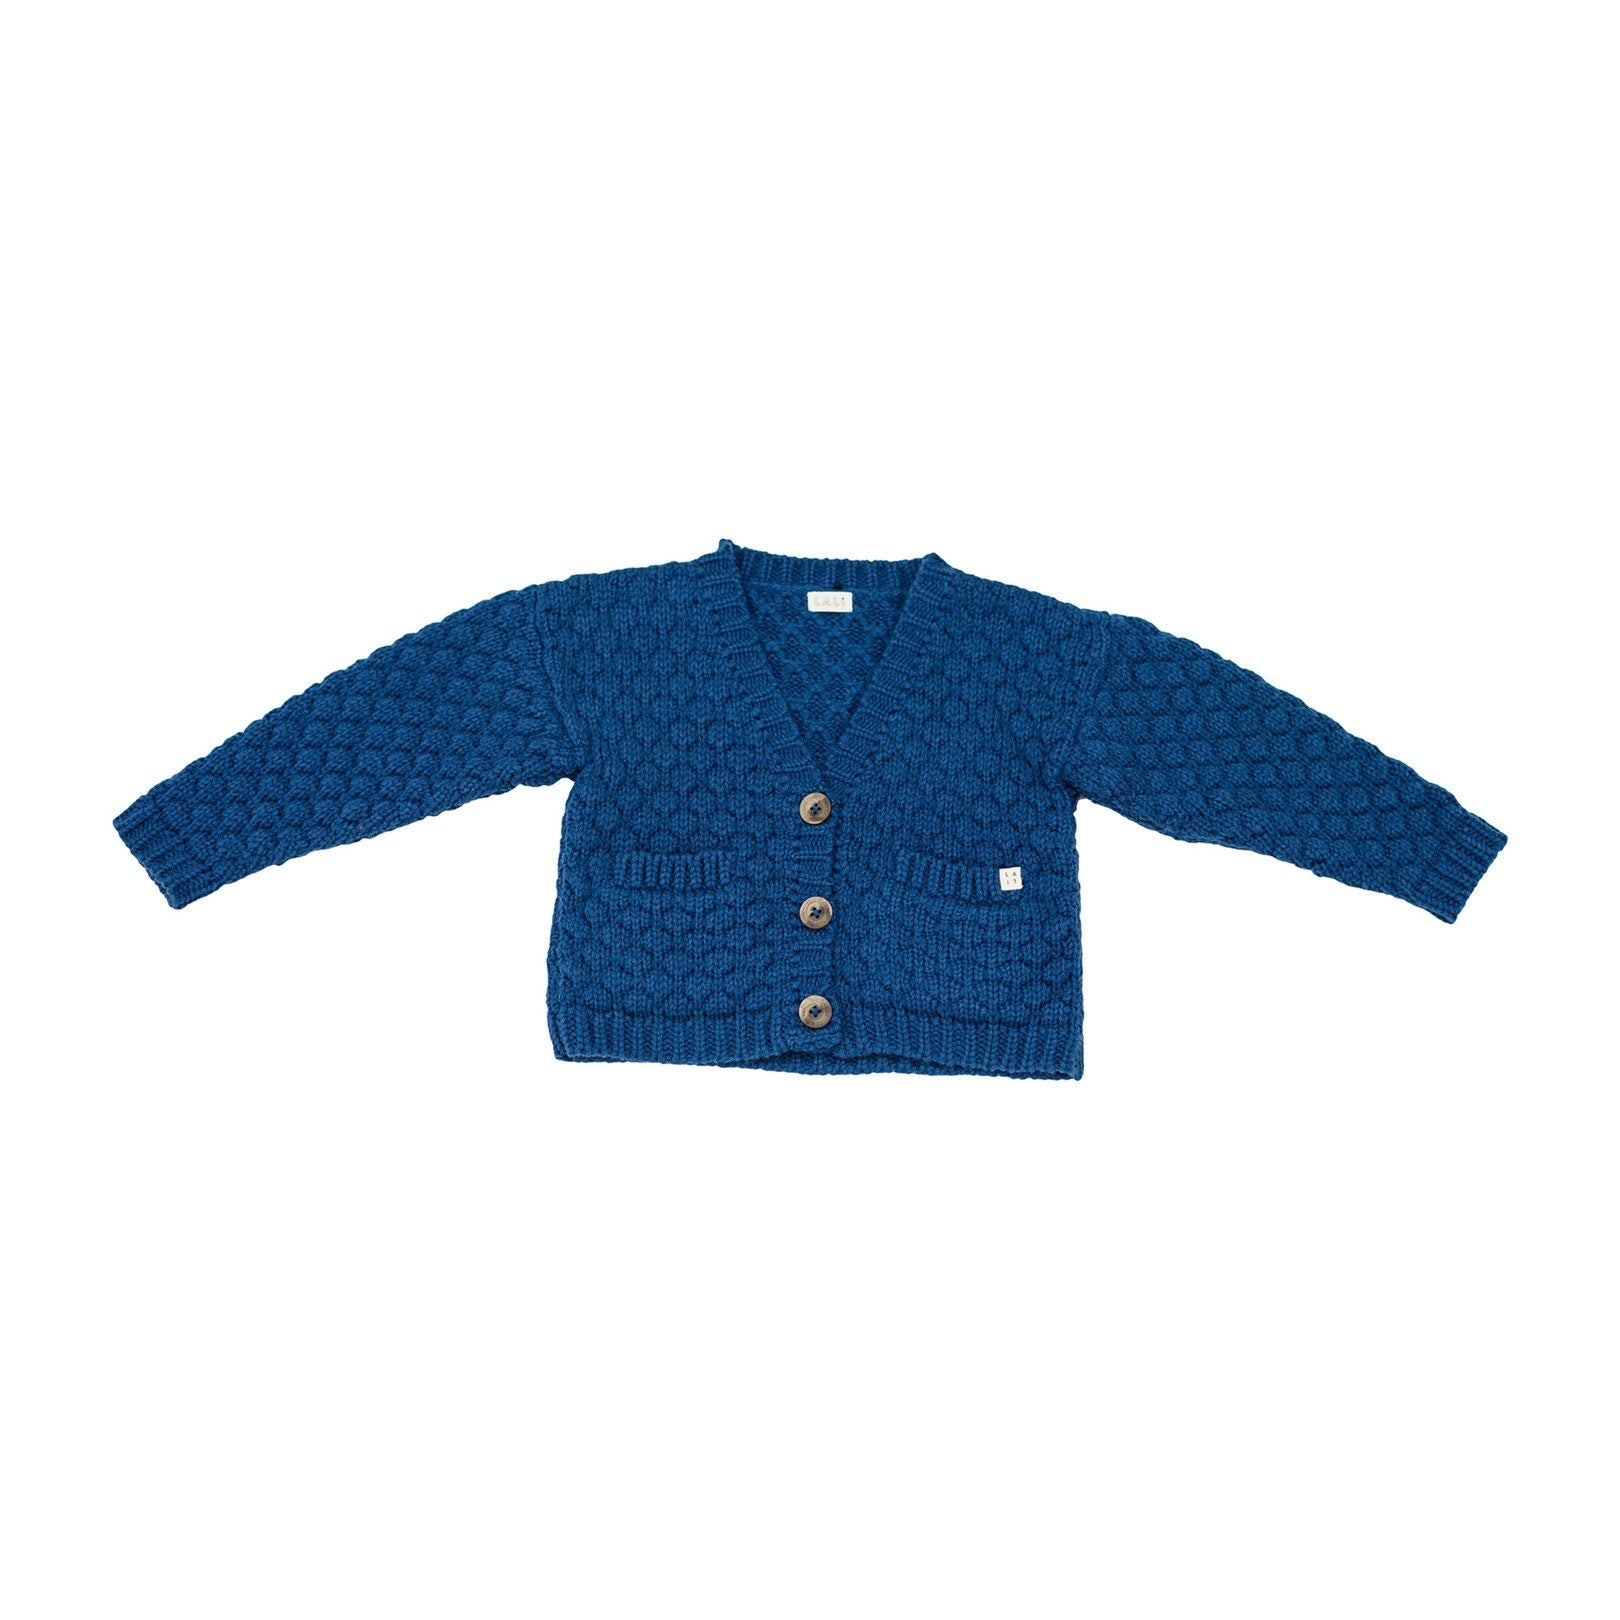 ALPACA WOOL CARDIGAN, BLUE - Spinel Boutique